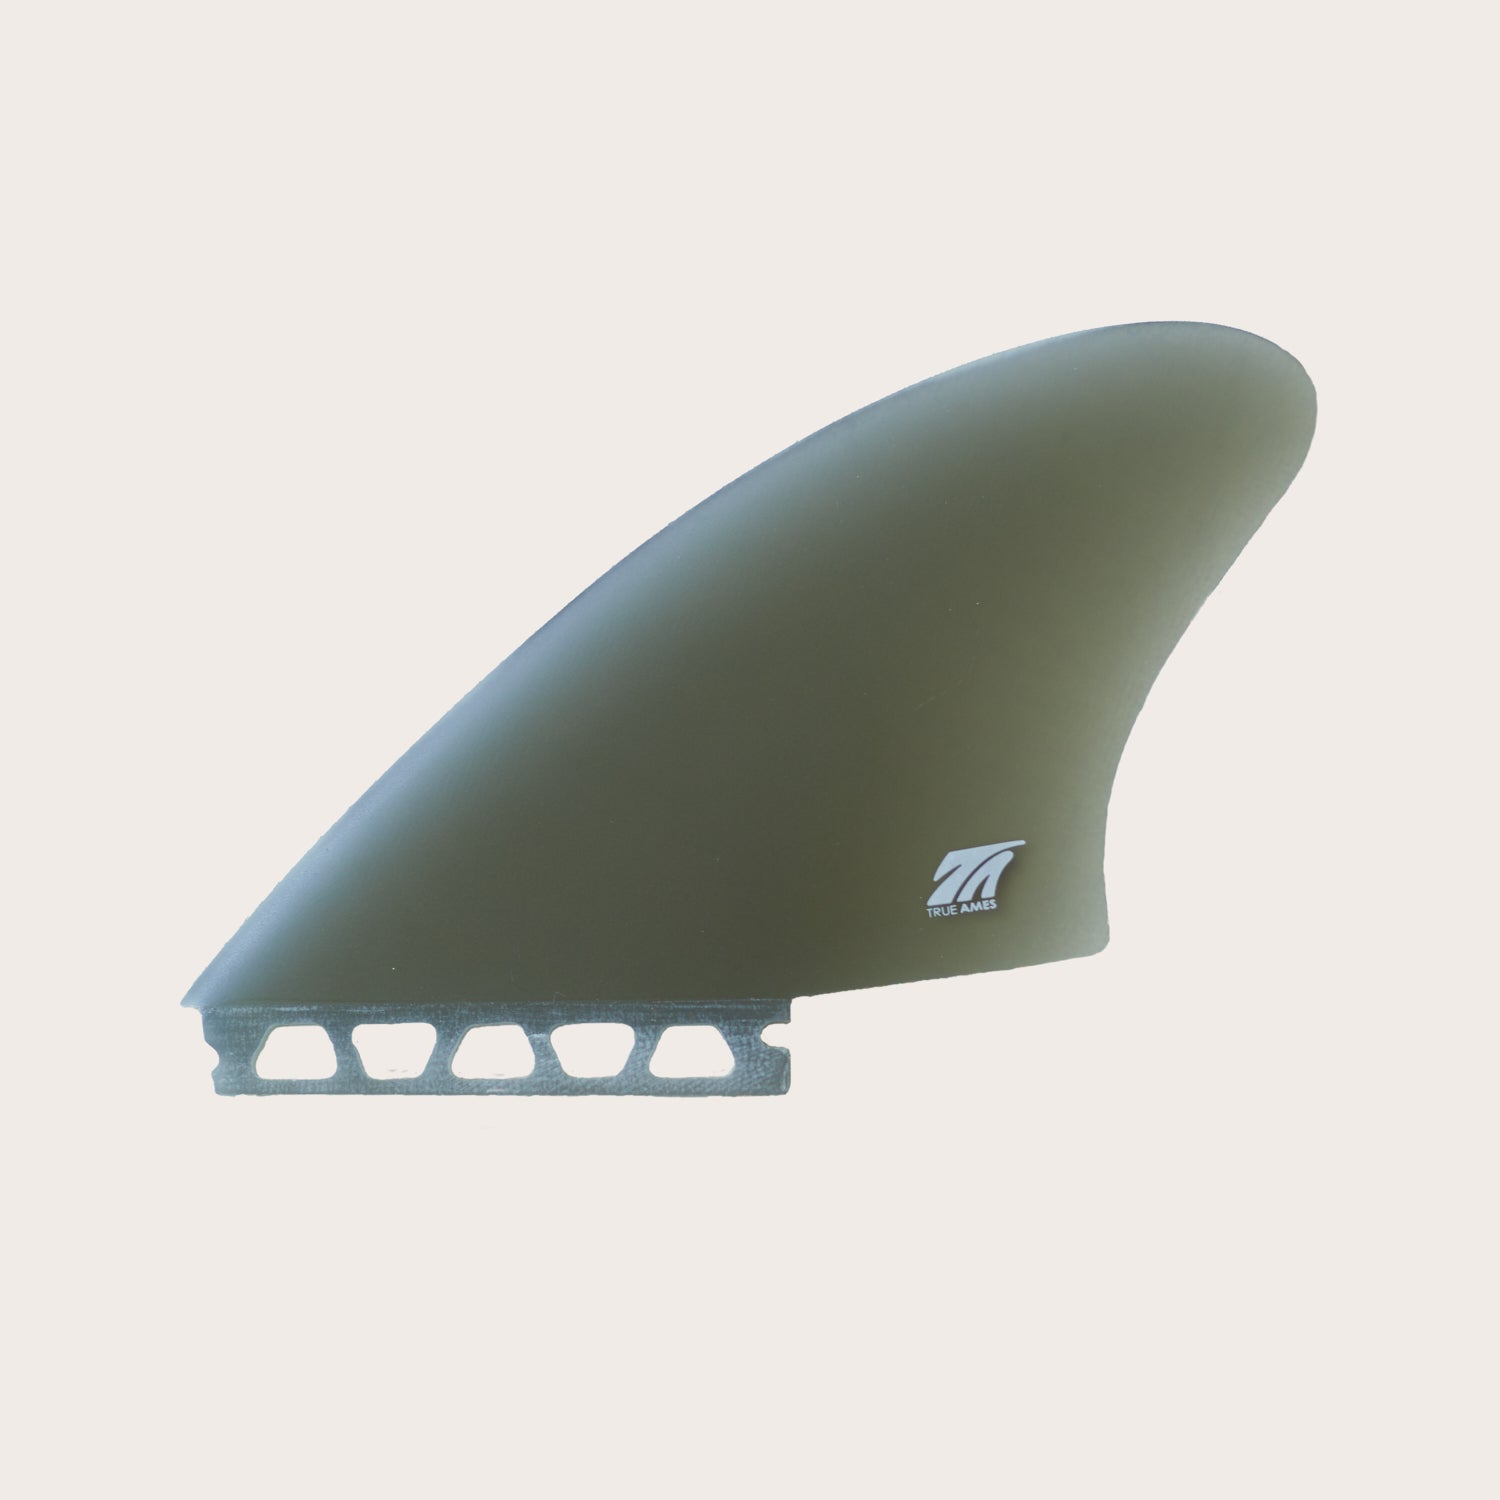 True Ames Hobie Keel Fins (Futures Compatible), set of two, smoke